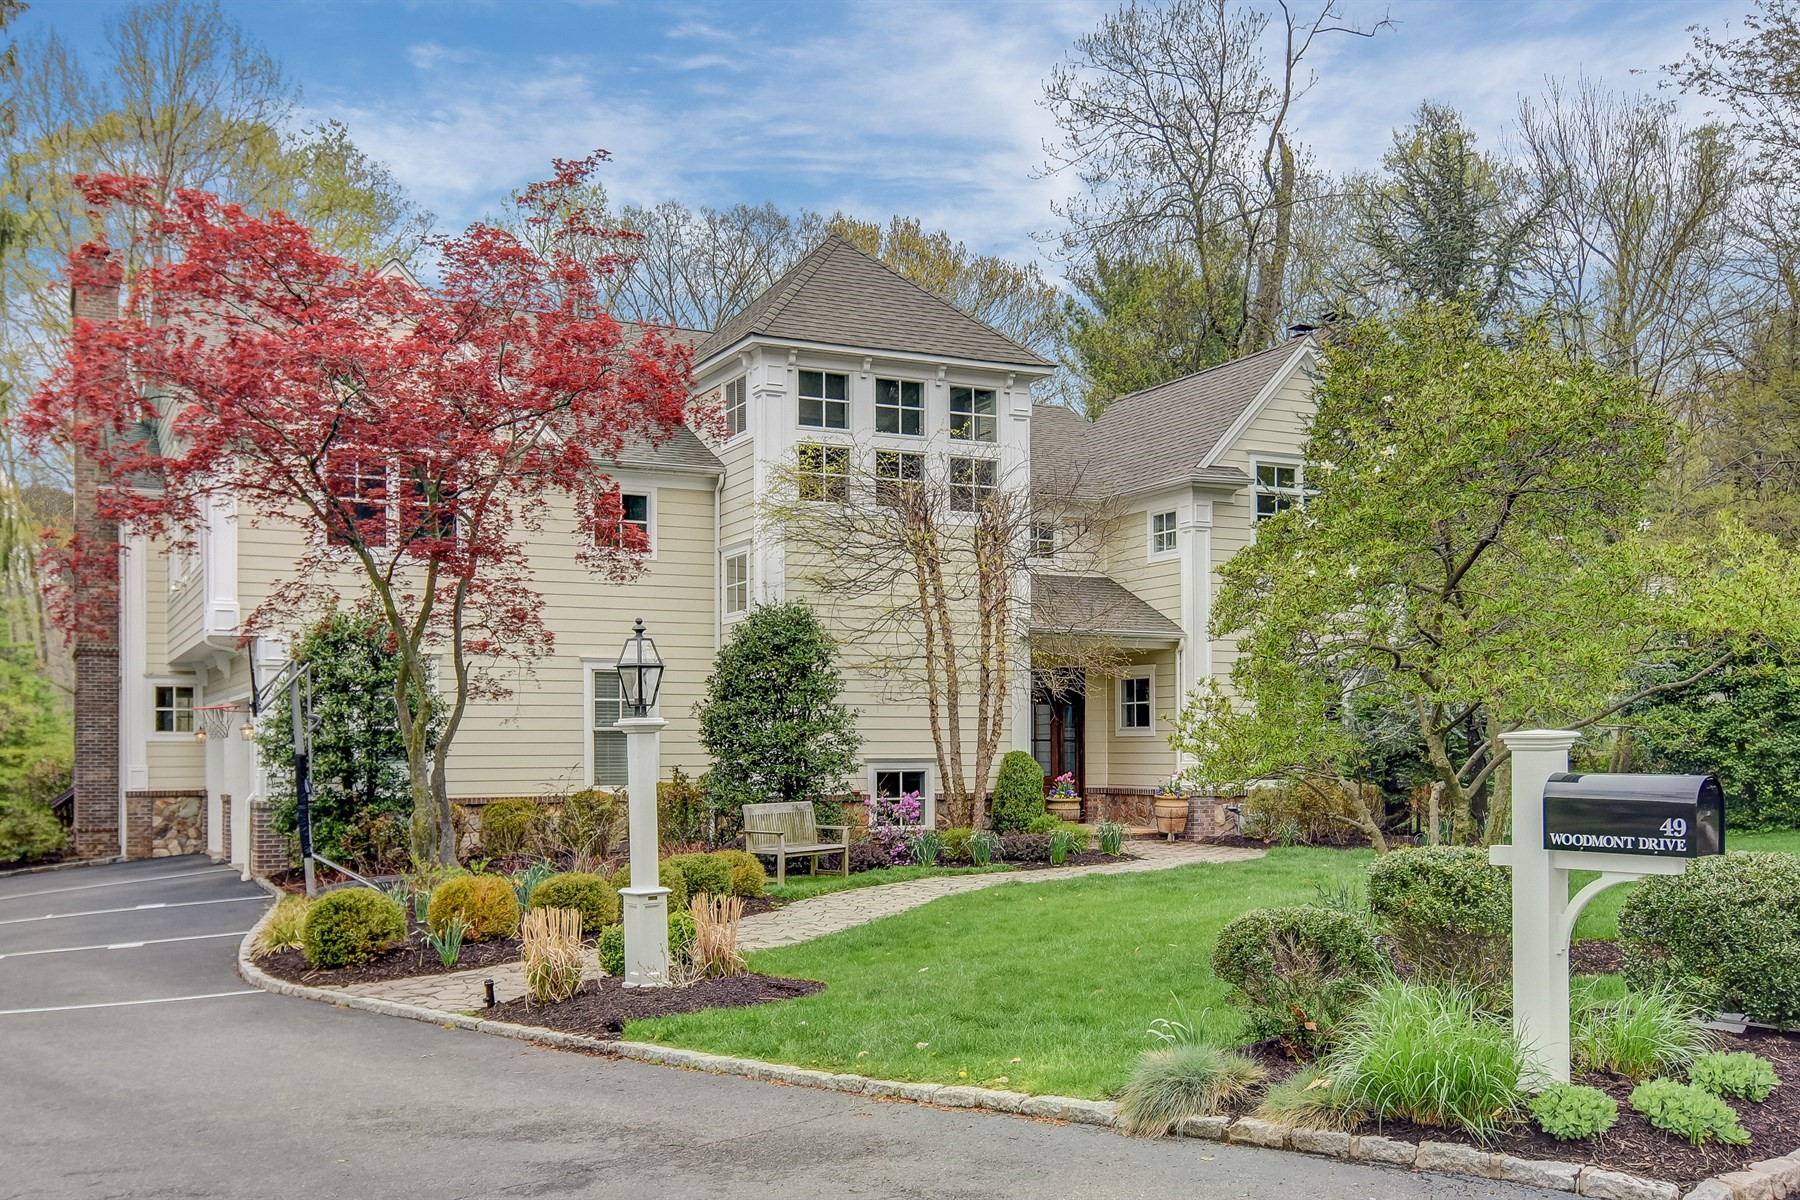 Single Family Home for Sale at Spectacular Colonial 49 Woodmont Drive Chatham, New Jersey 07928 United States